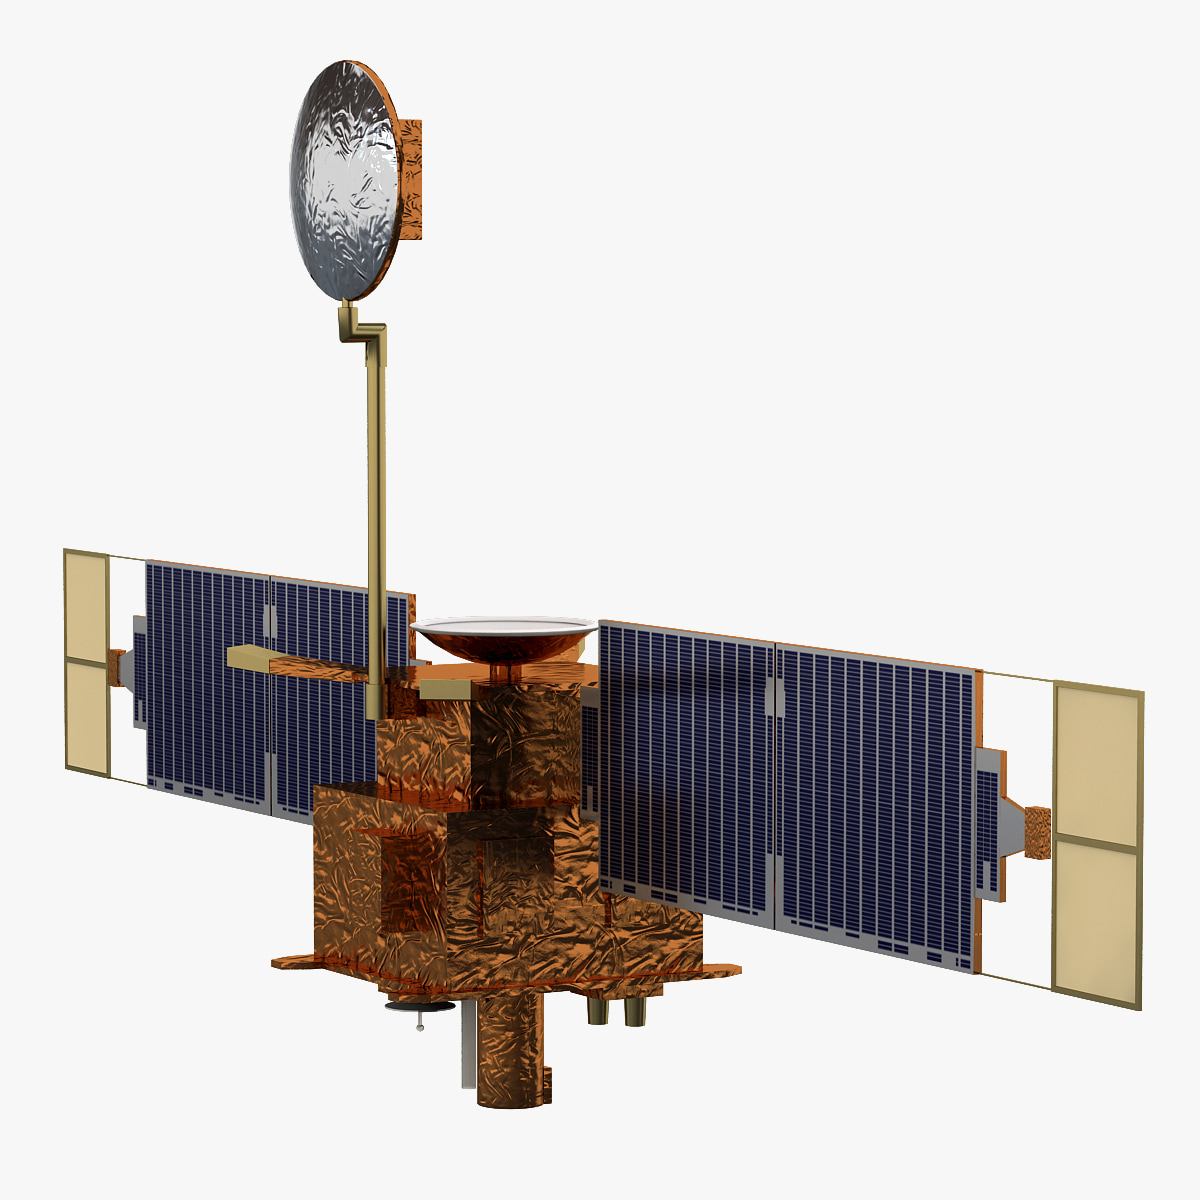 Mars_Global_Surveyor_Satellite_000.jpg